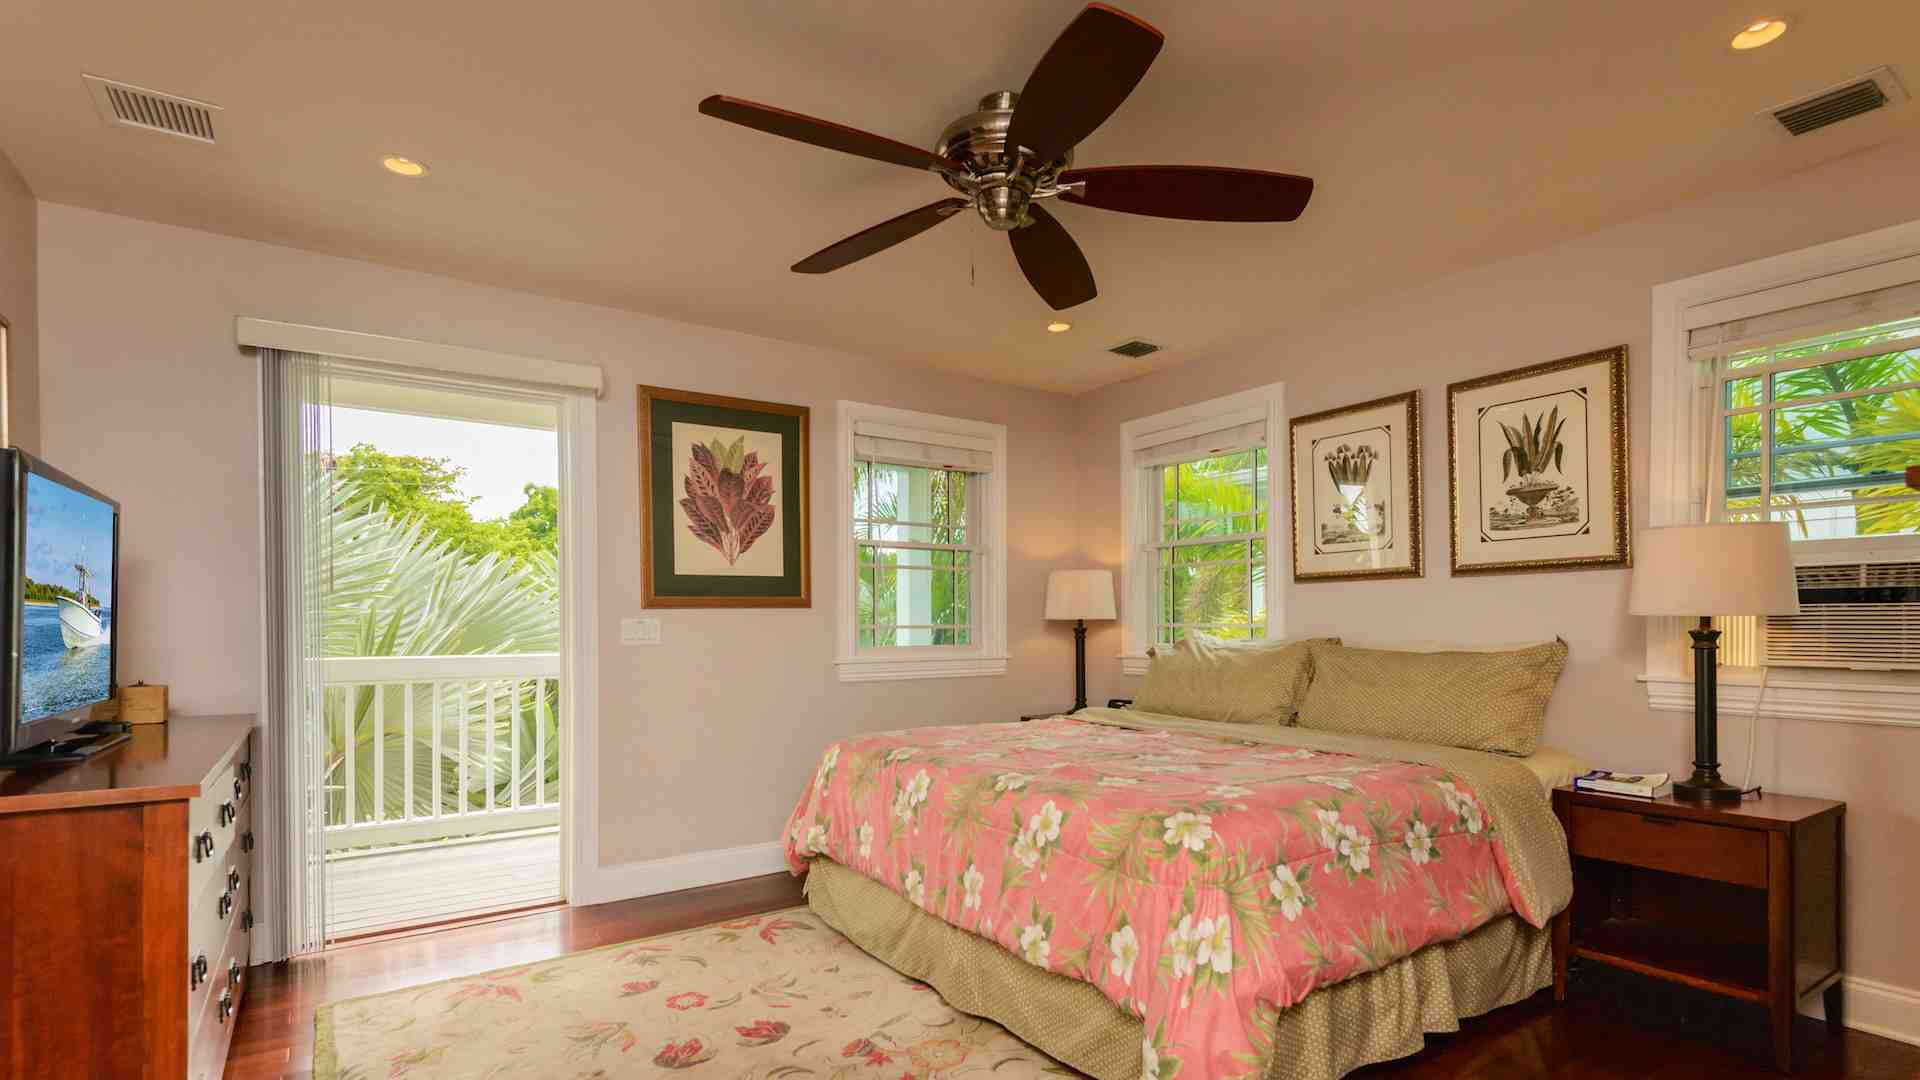 The master bedroom has a king sized bed, several large dressers, ceiling fan...